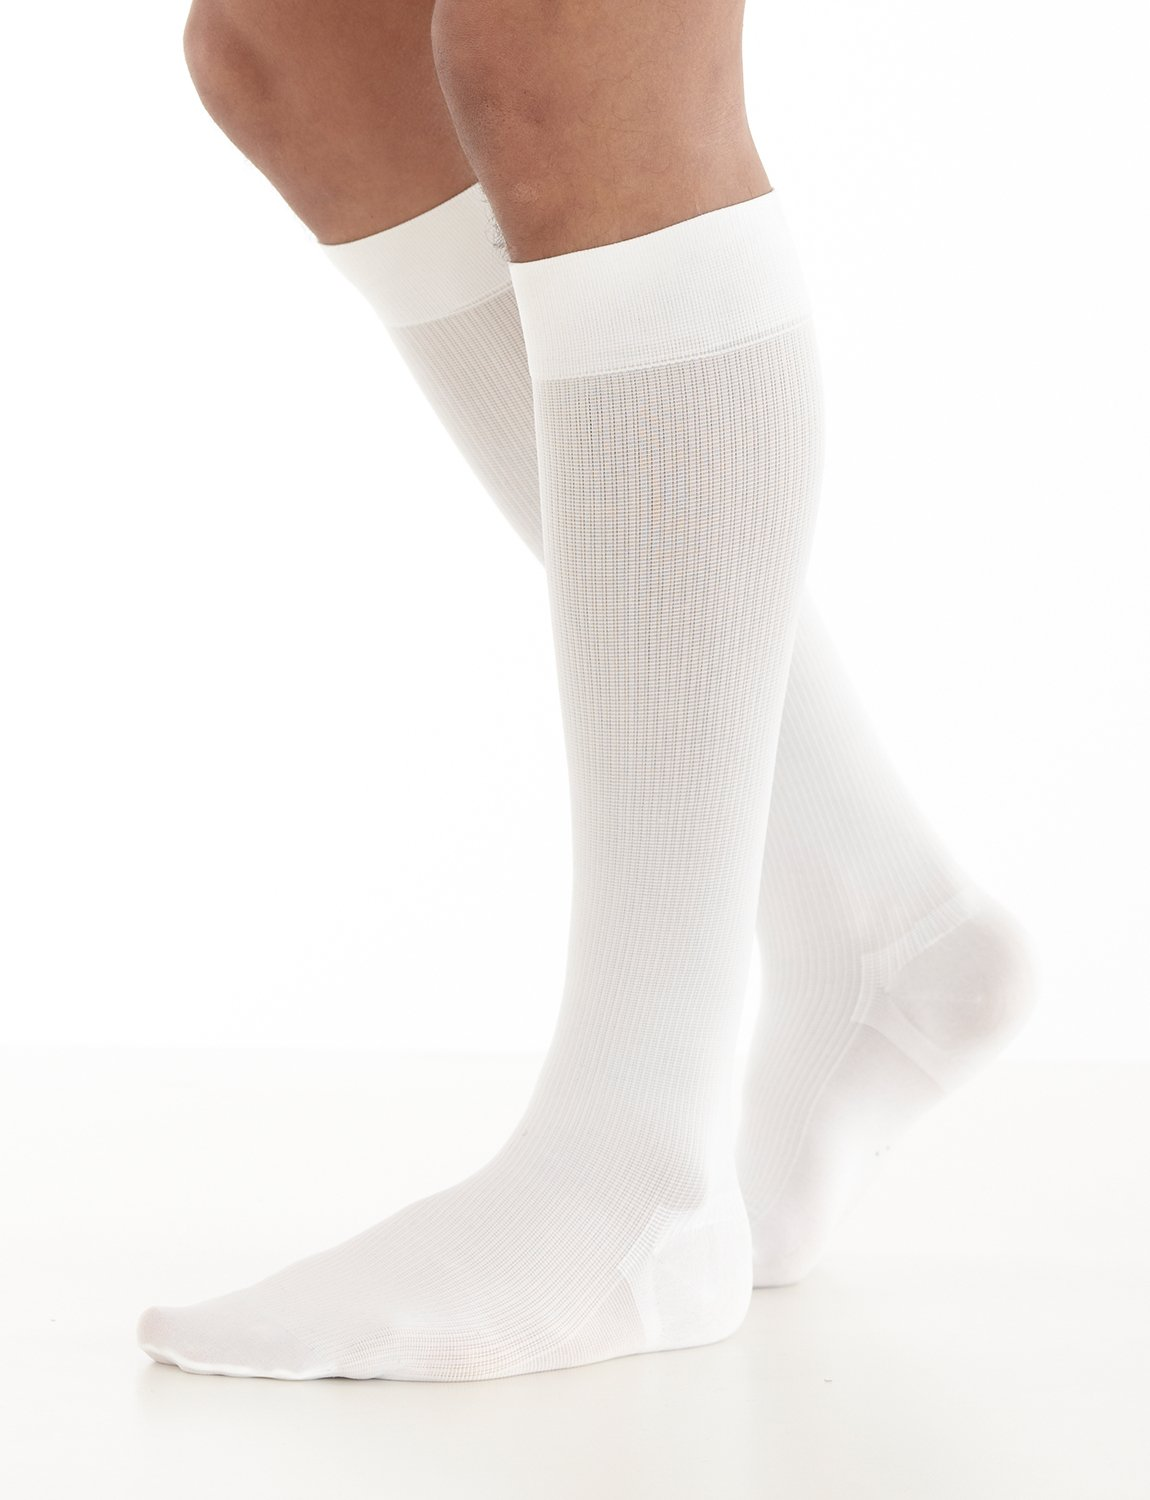 NEO G Energizing Daily Wear Mens Socks - LARGE - White - Medical Grade Quality, True Graduated Compression HELP aid circulation, revitalize tired, aching legs or swollen ankles, everyday comfort